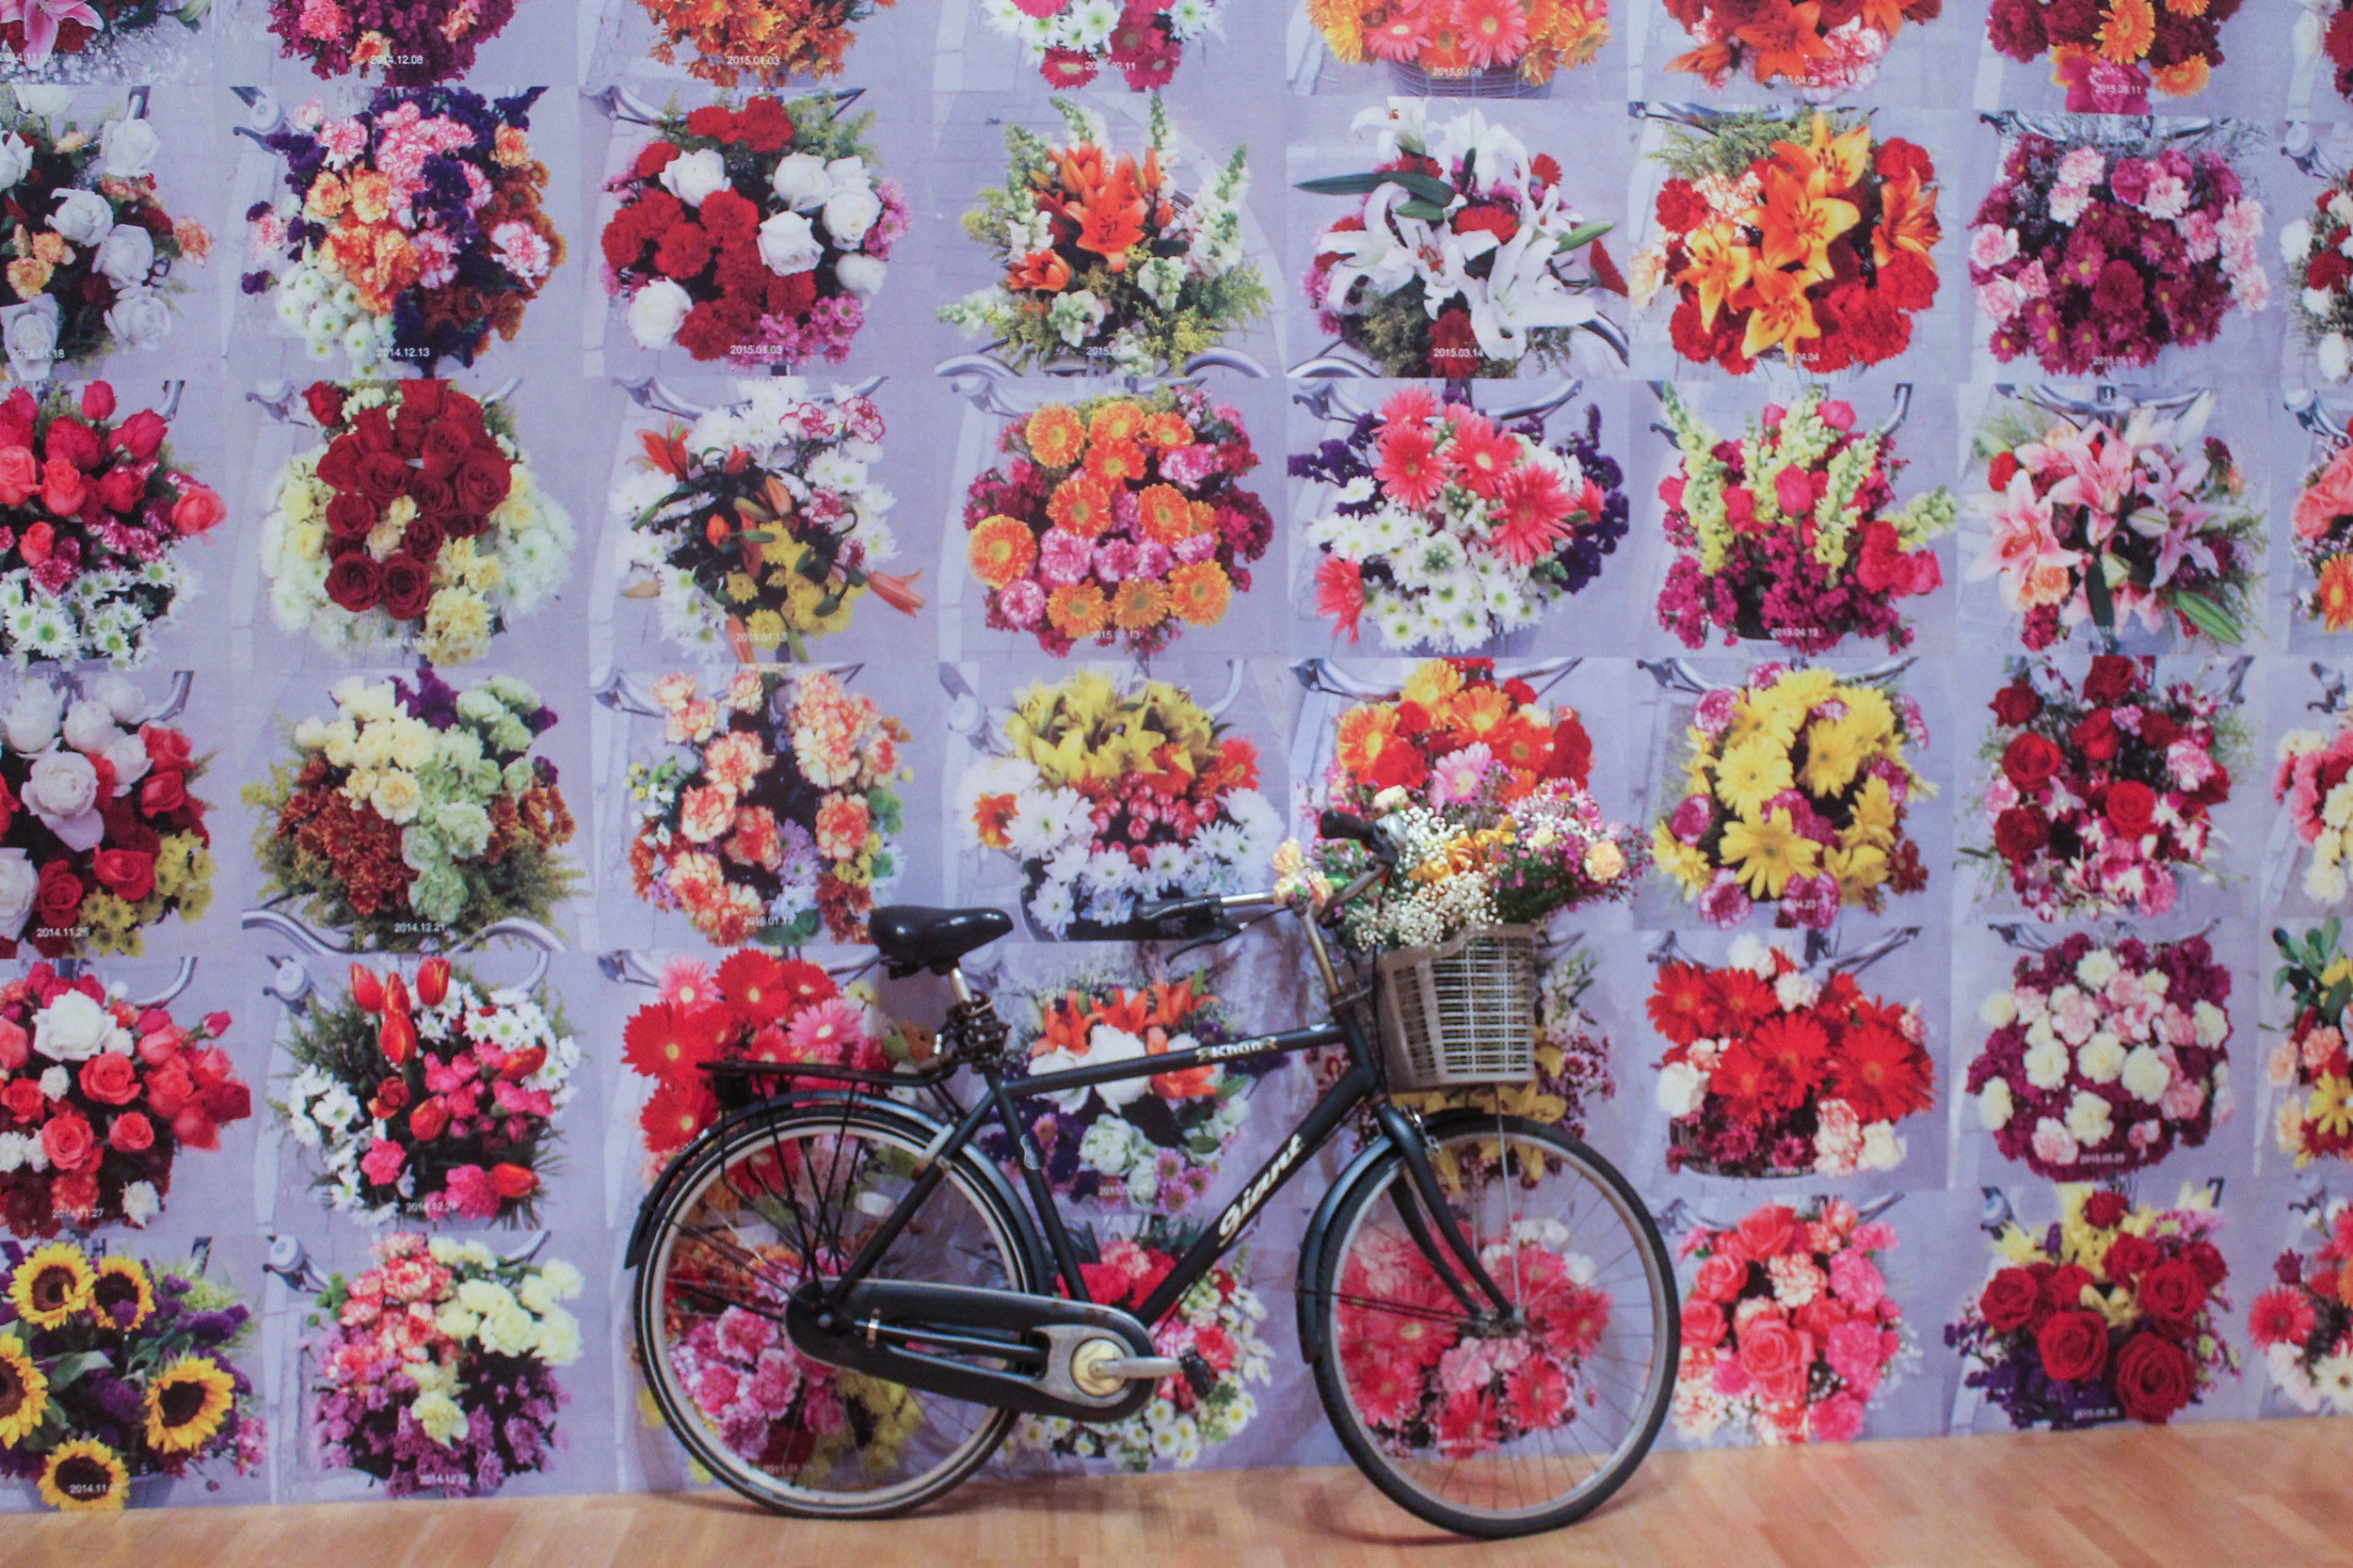 Every morning, for 600 days, Weiwei put a bouquet of flowers in the basket of the bicycle that is outside his studio as a daily demonstration against the Chinese governments confiscation of his passport. He documented each day on his  Flickr.